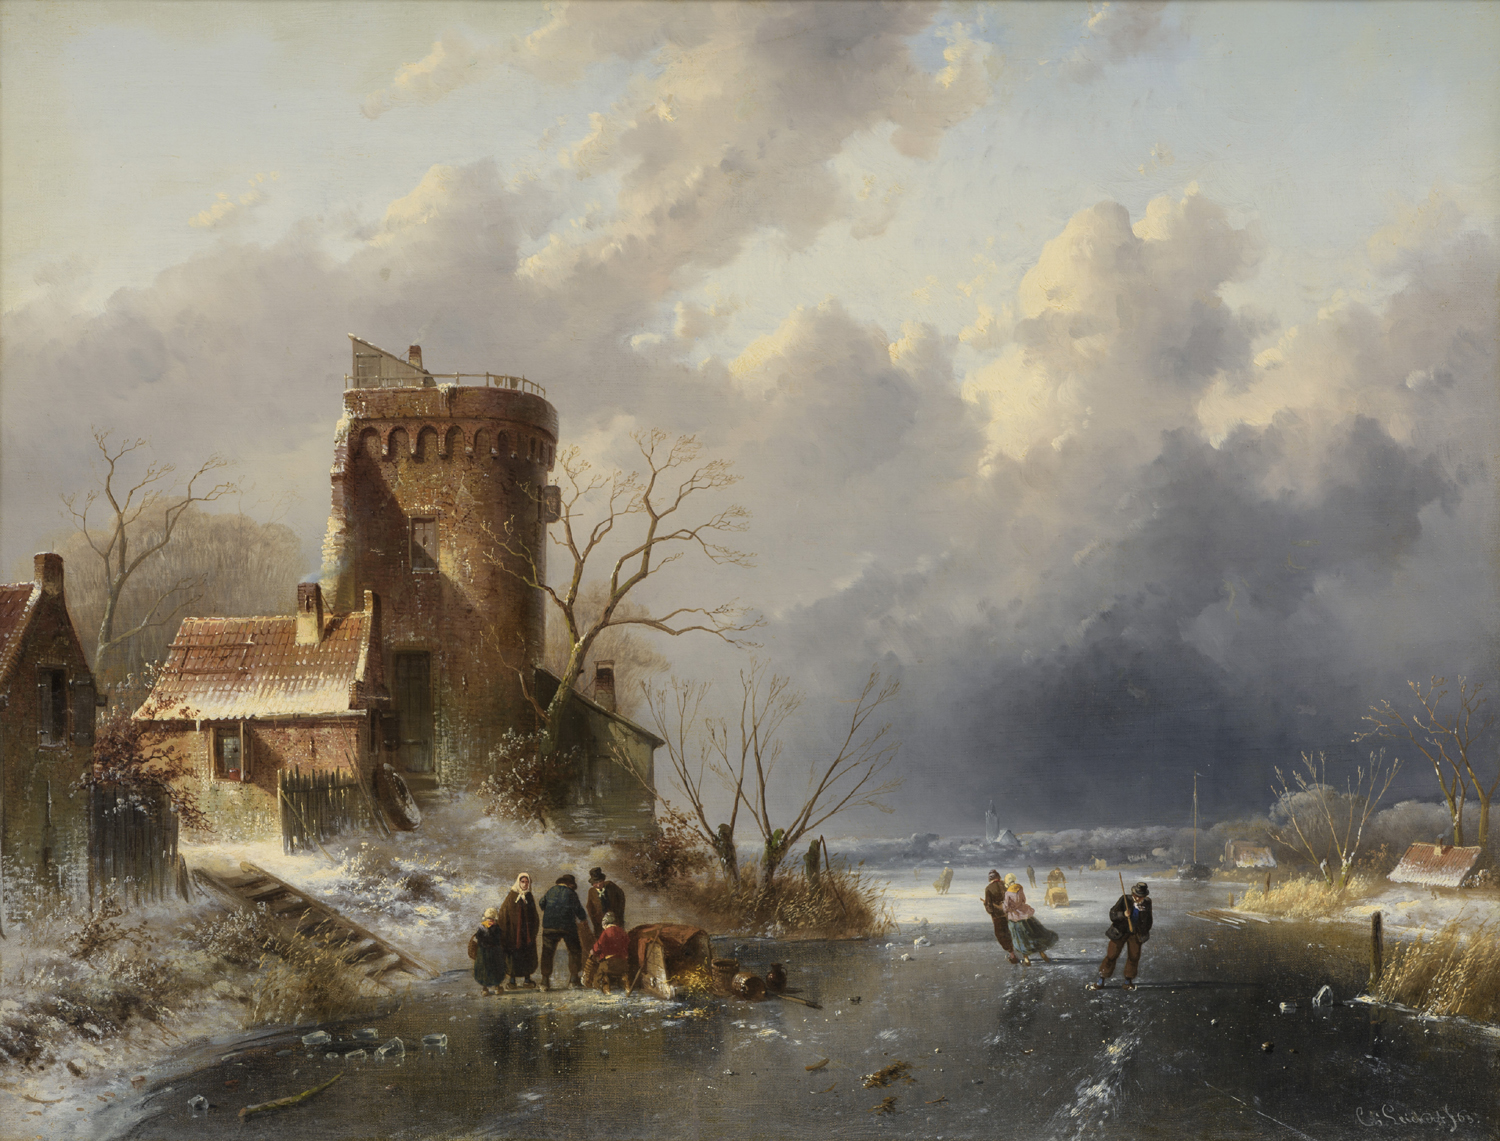 Charles Leickert | A Dutch winter landscape with figures on the ice | Kunsthandel Bies | Bies Gallery